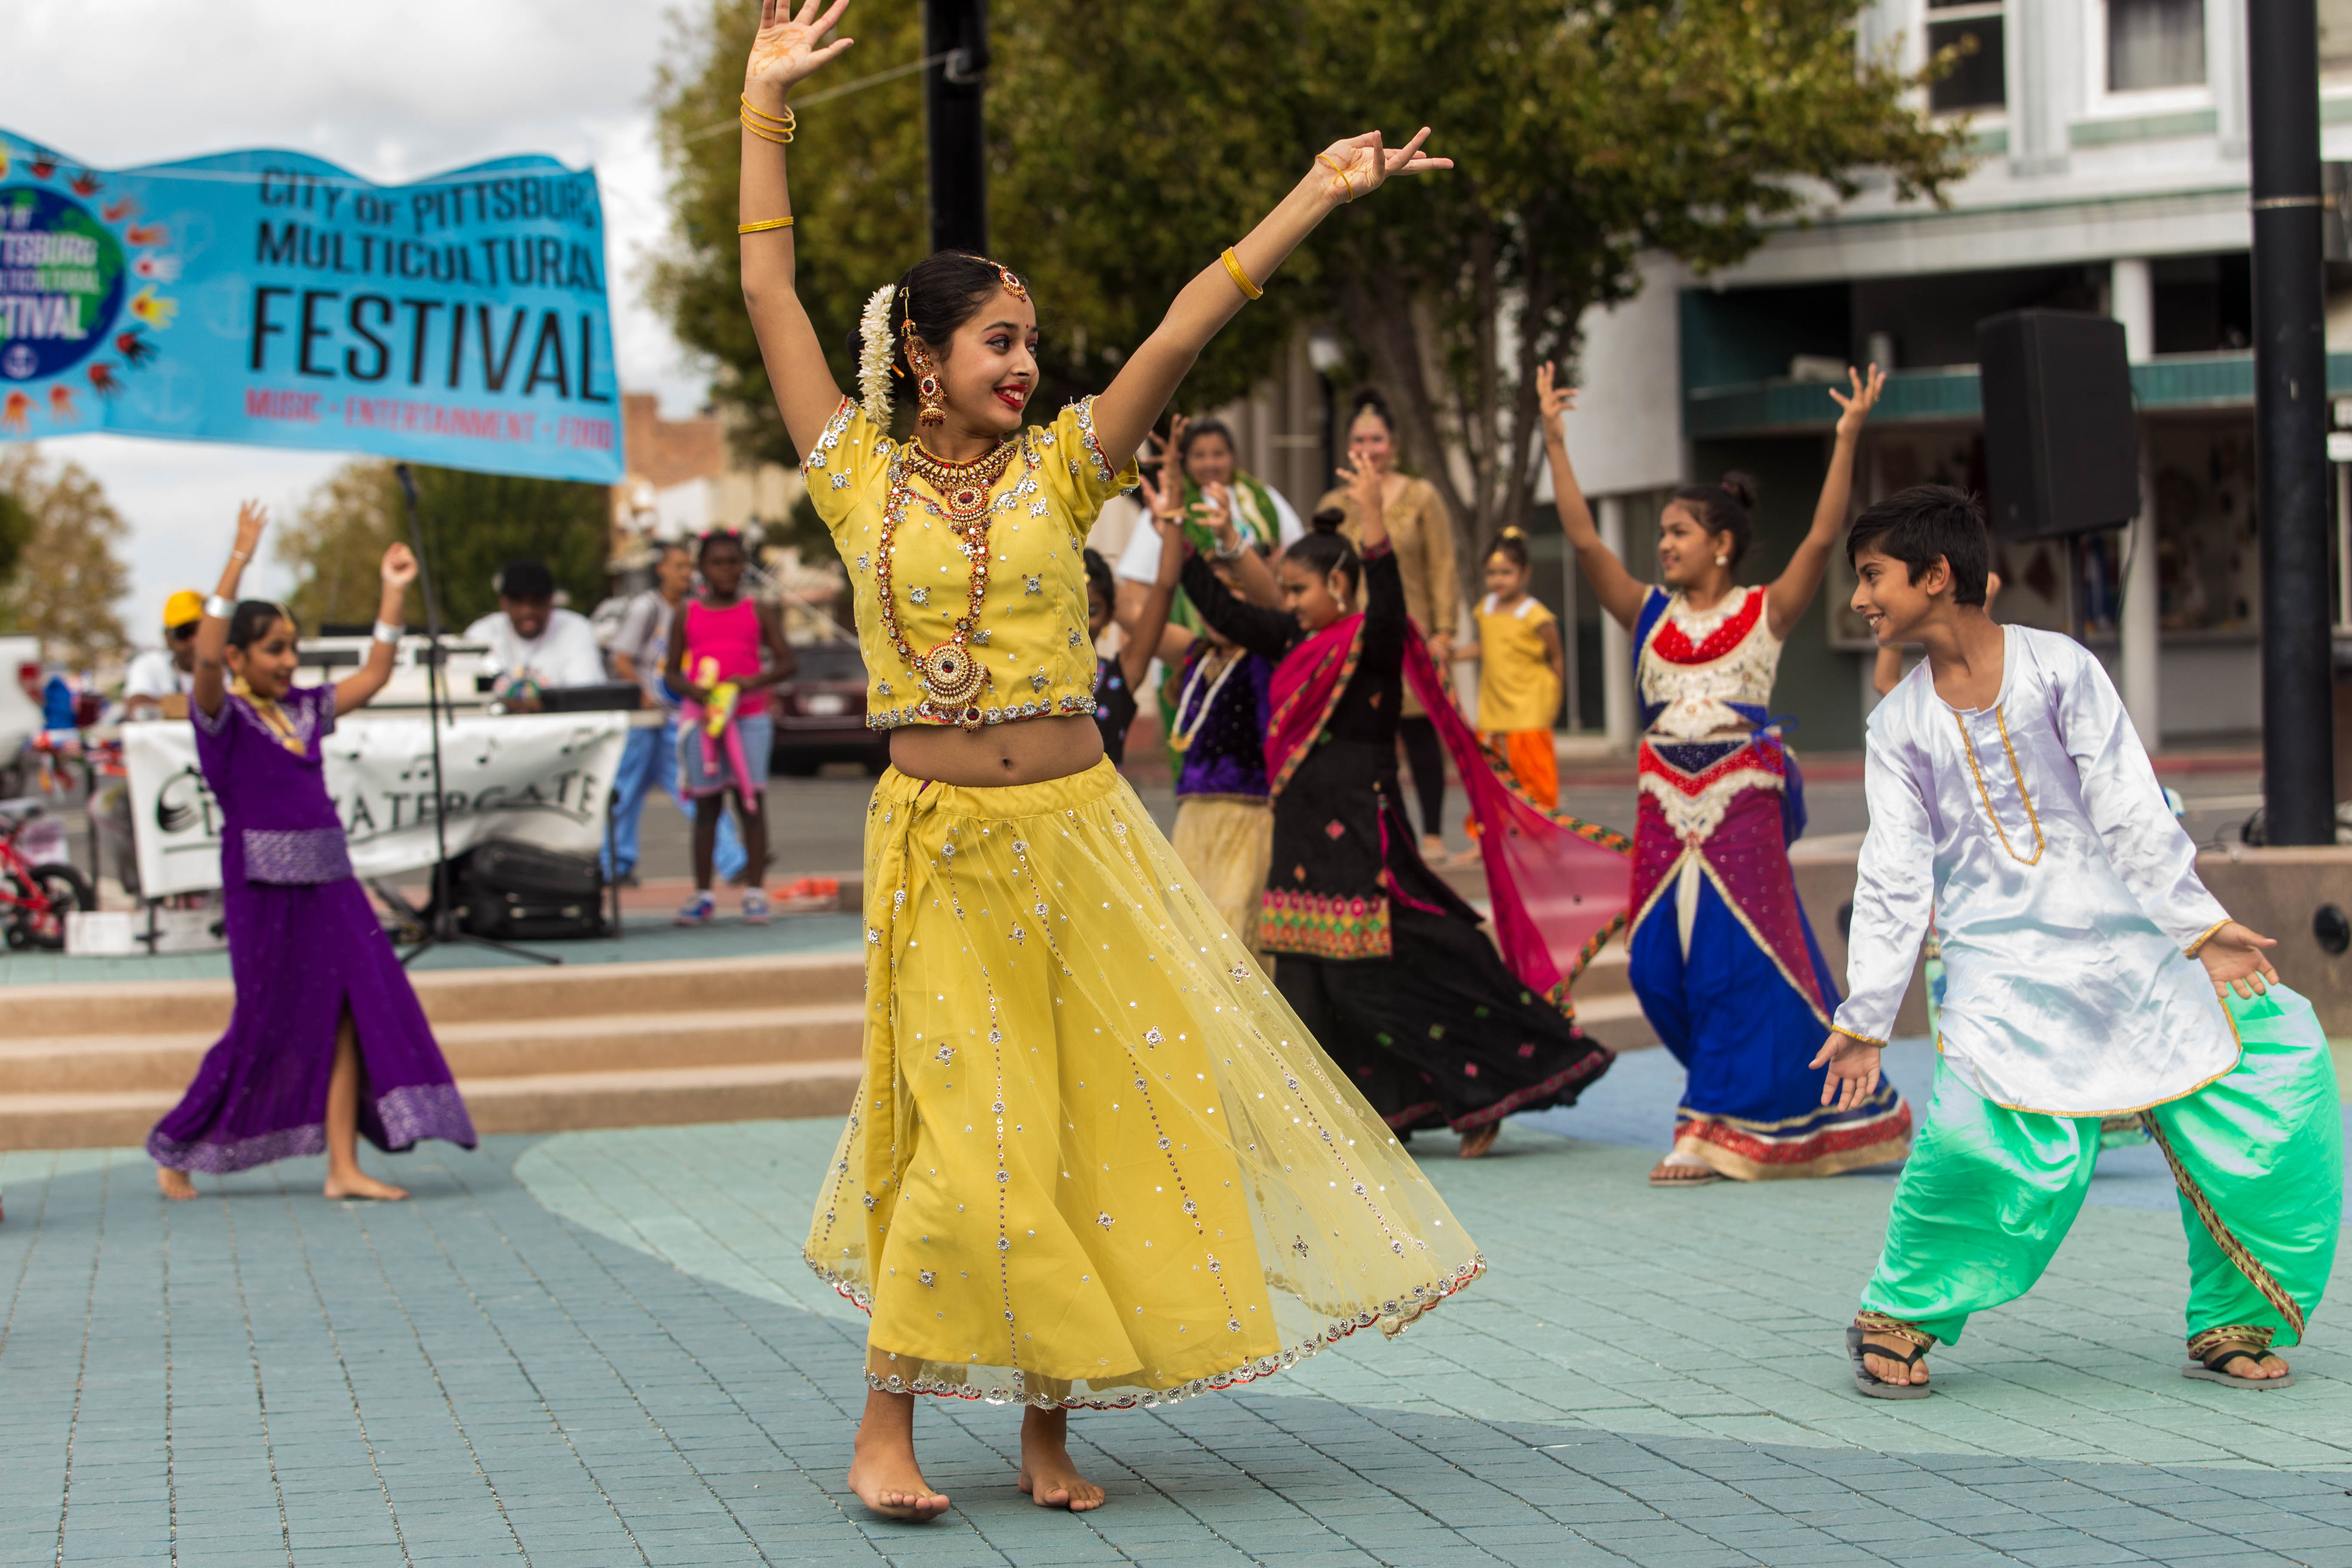 CITY_PITTSBURG_MULTICULTURAL_OCTOBER_2016 (674)